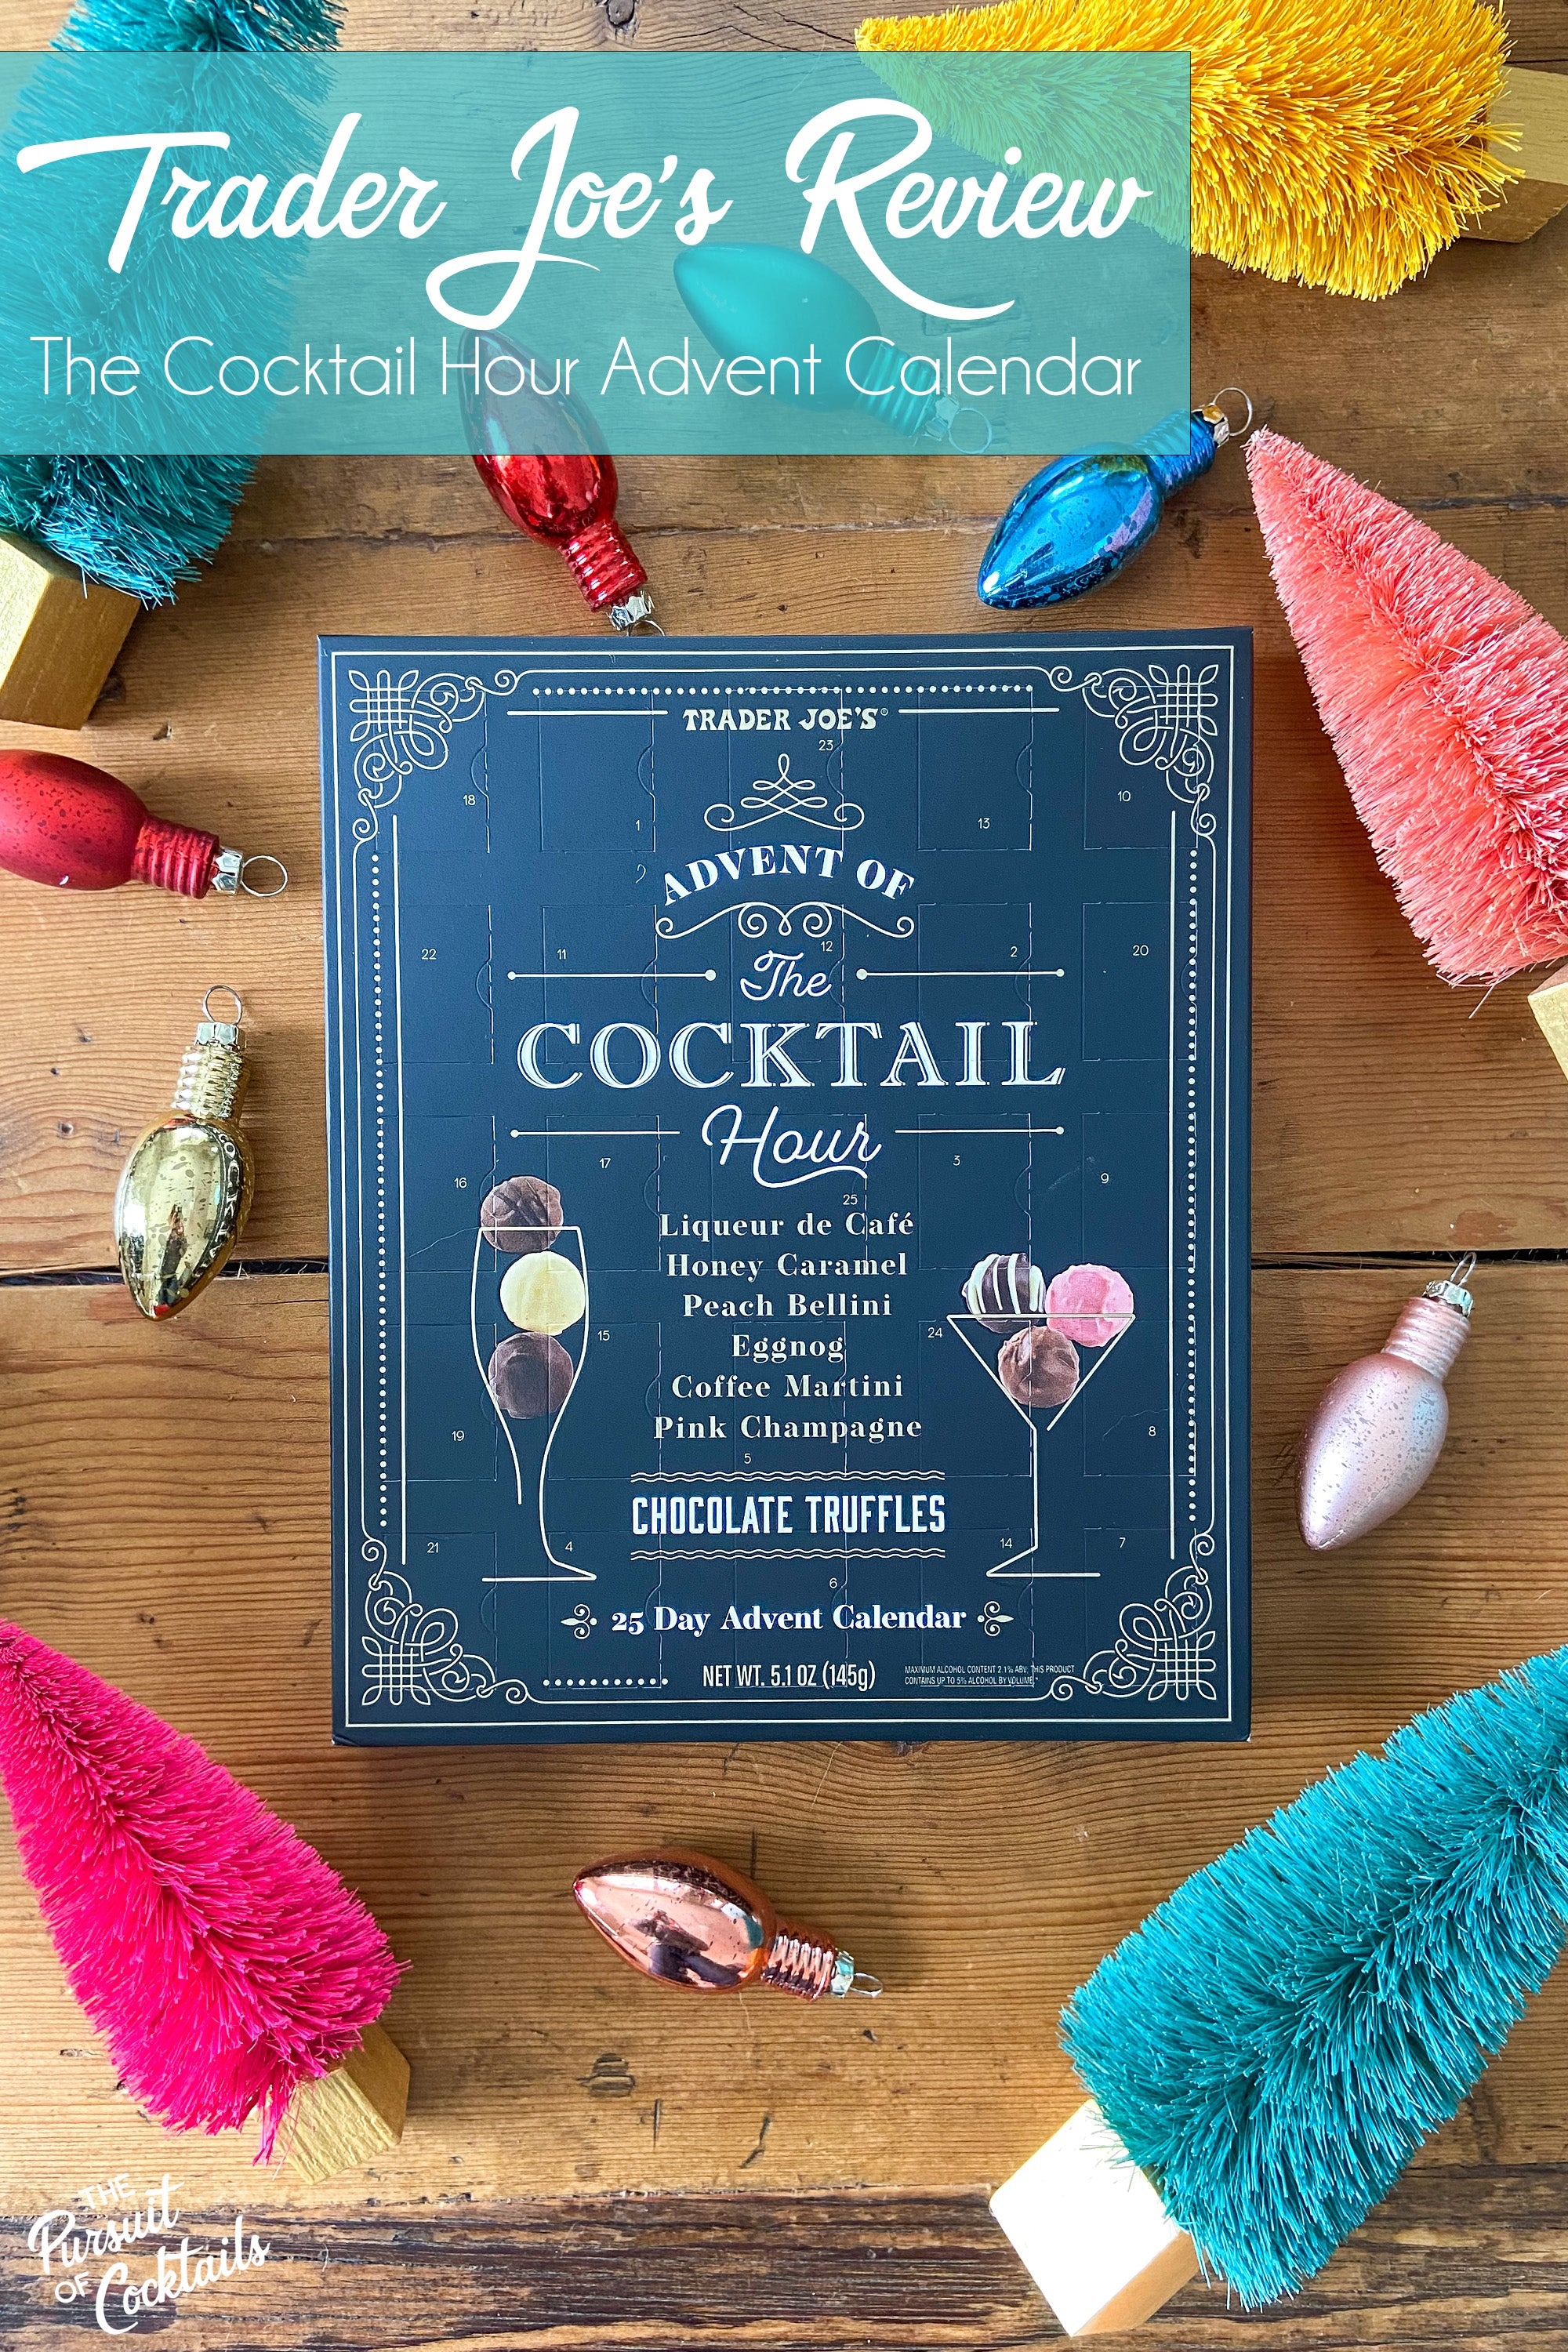 Trader Joe's Cocktail Hour Advent Calendar review by The Pursuit of Cocktails